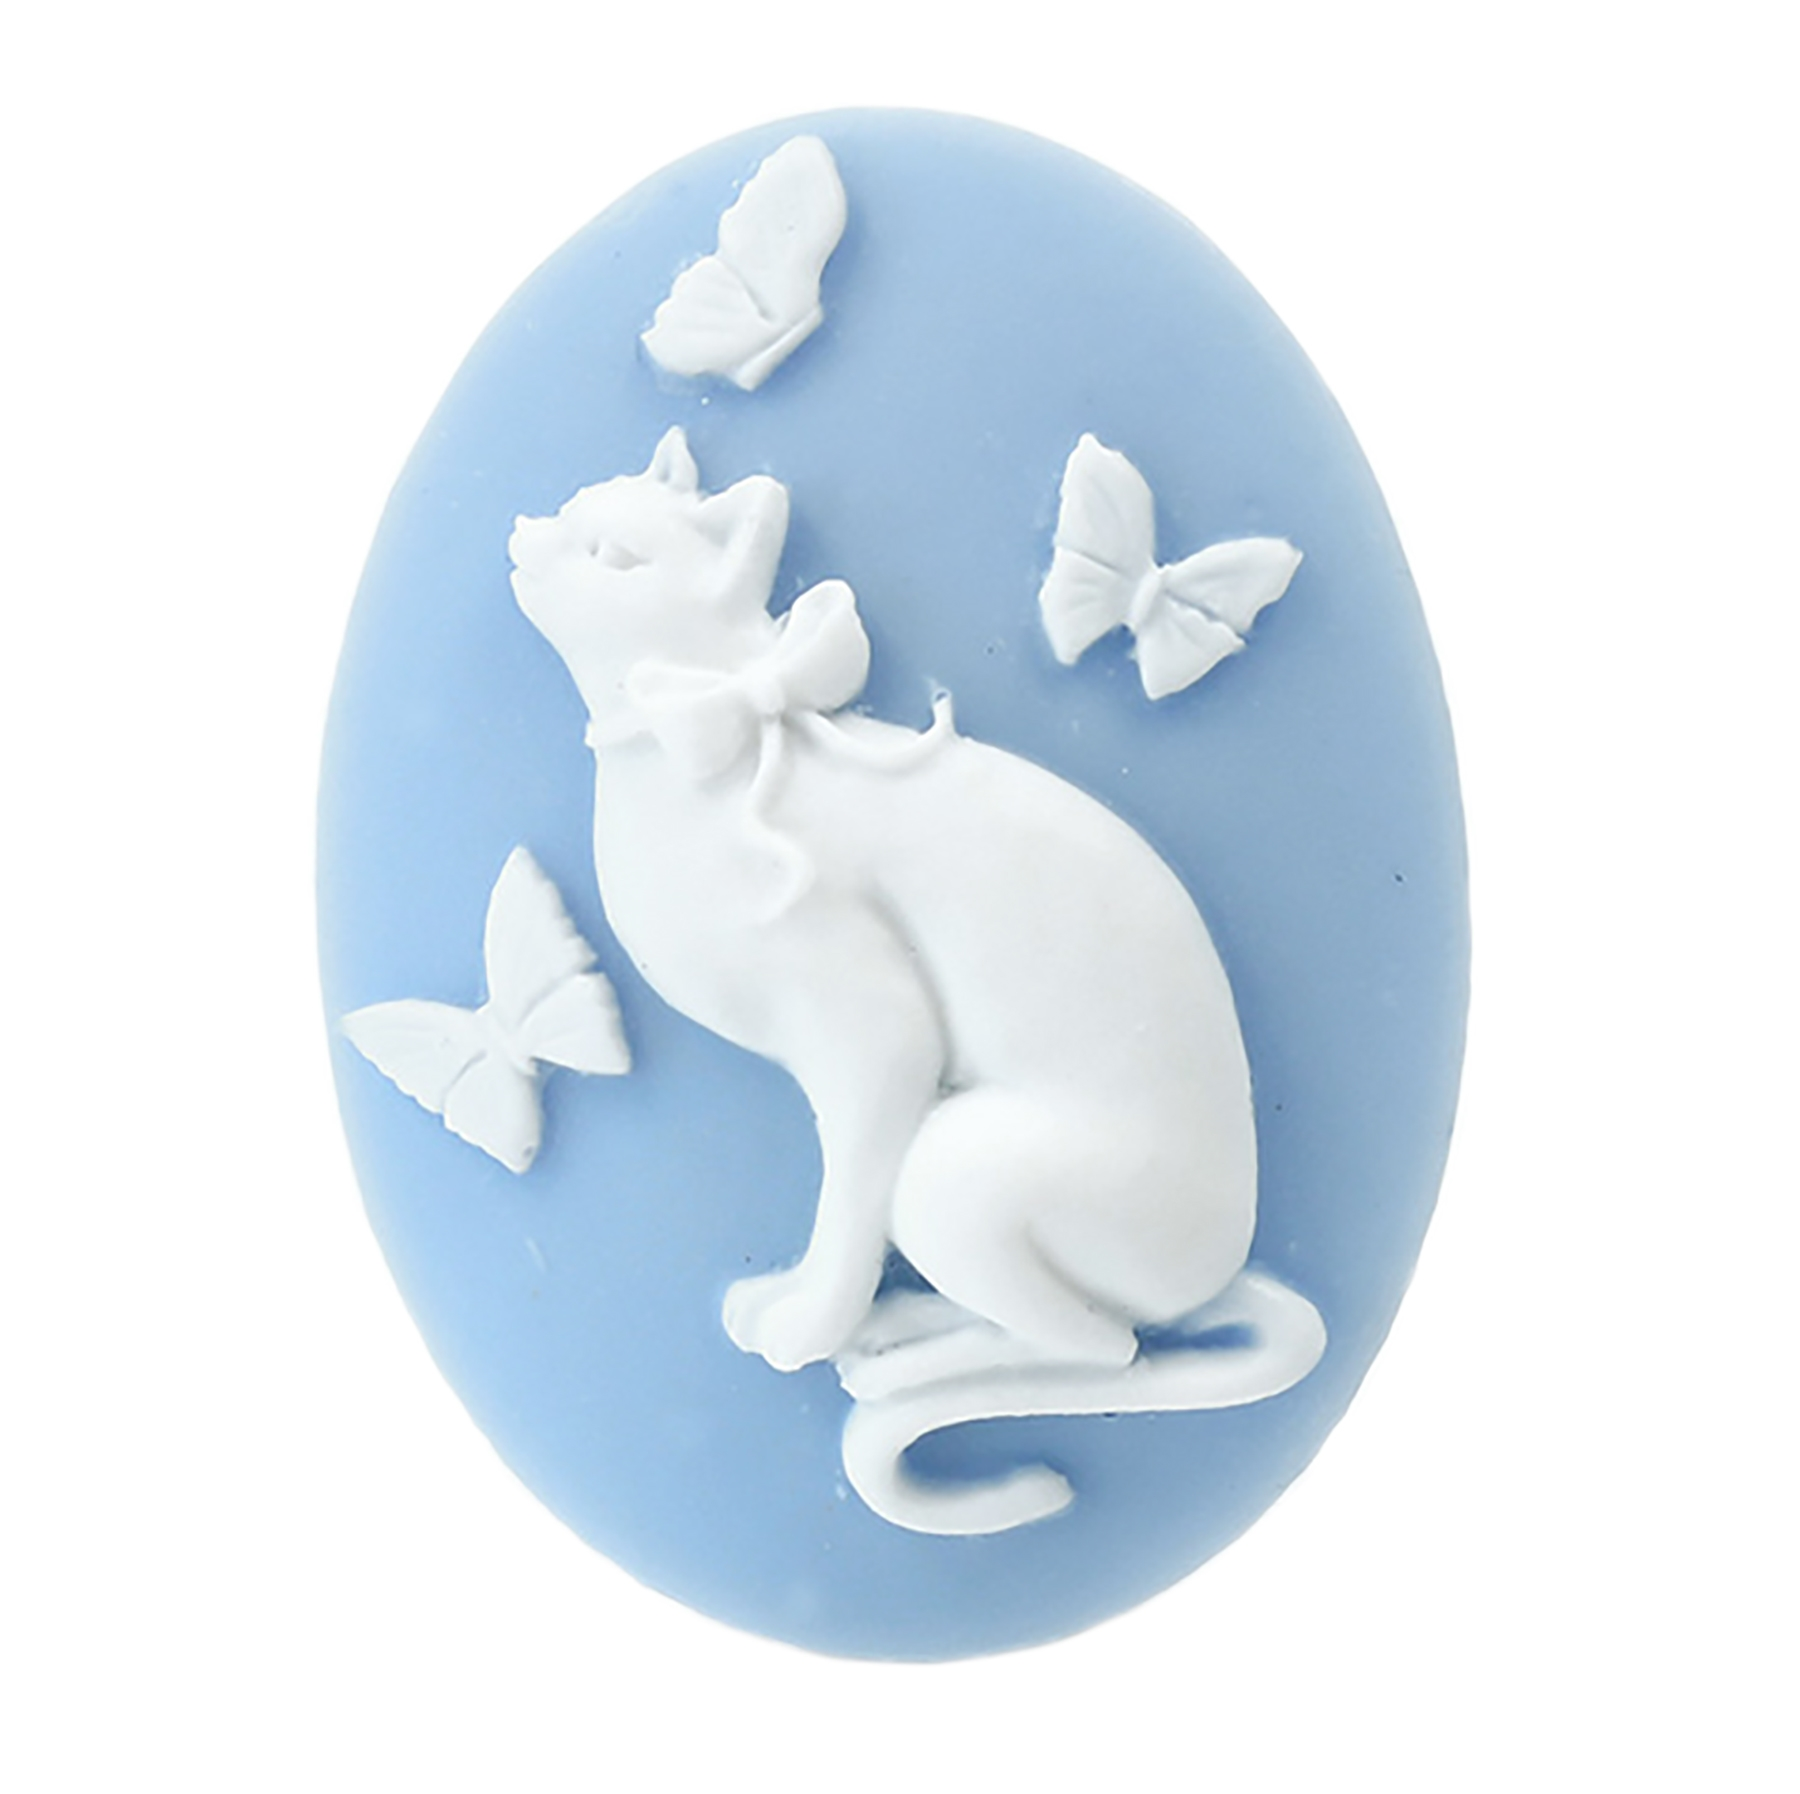 cat with butterfly cameo, blue cameo, white on blue, cat cameo, cat, kitty, butterfly, cat with butterfly, imported resin, cameo, cat jewelry, 40x30mm, animal, blue, jewelry making, jewelry supplies, jewelry findings, B'sue Boutiques, 08810